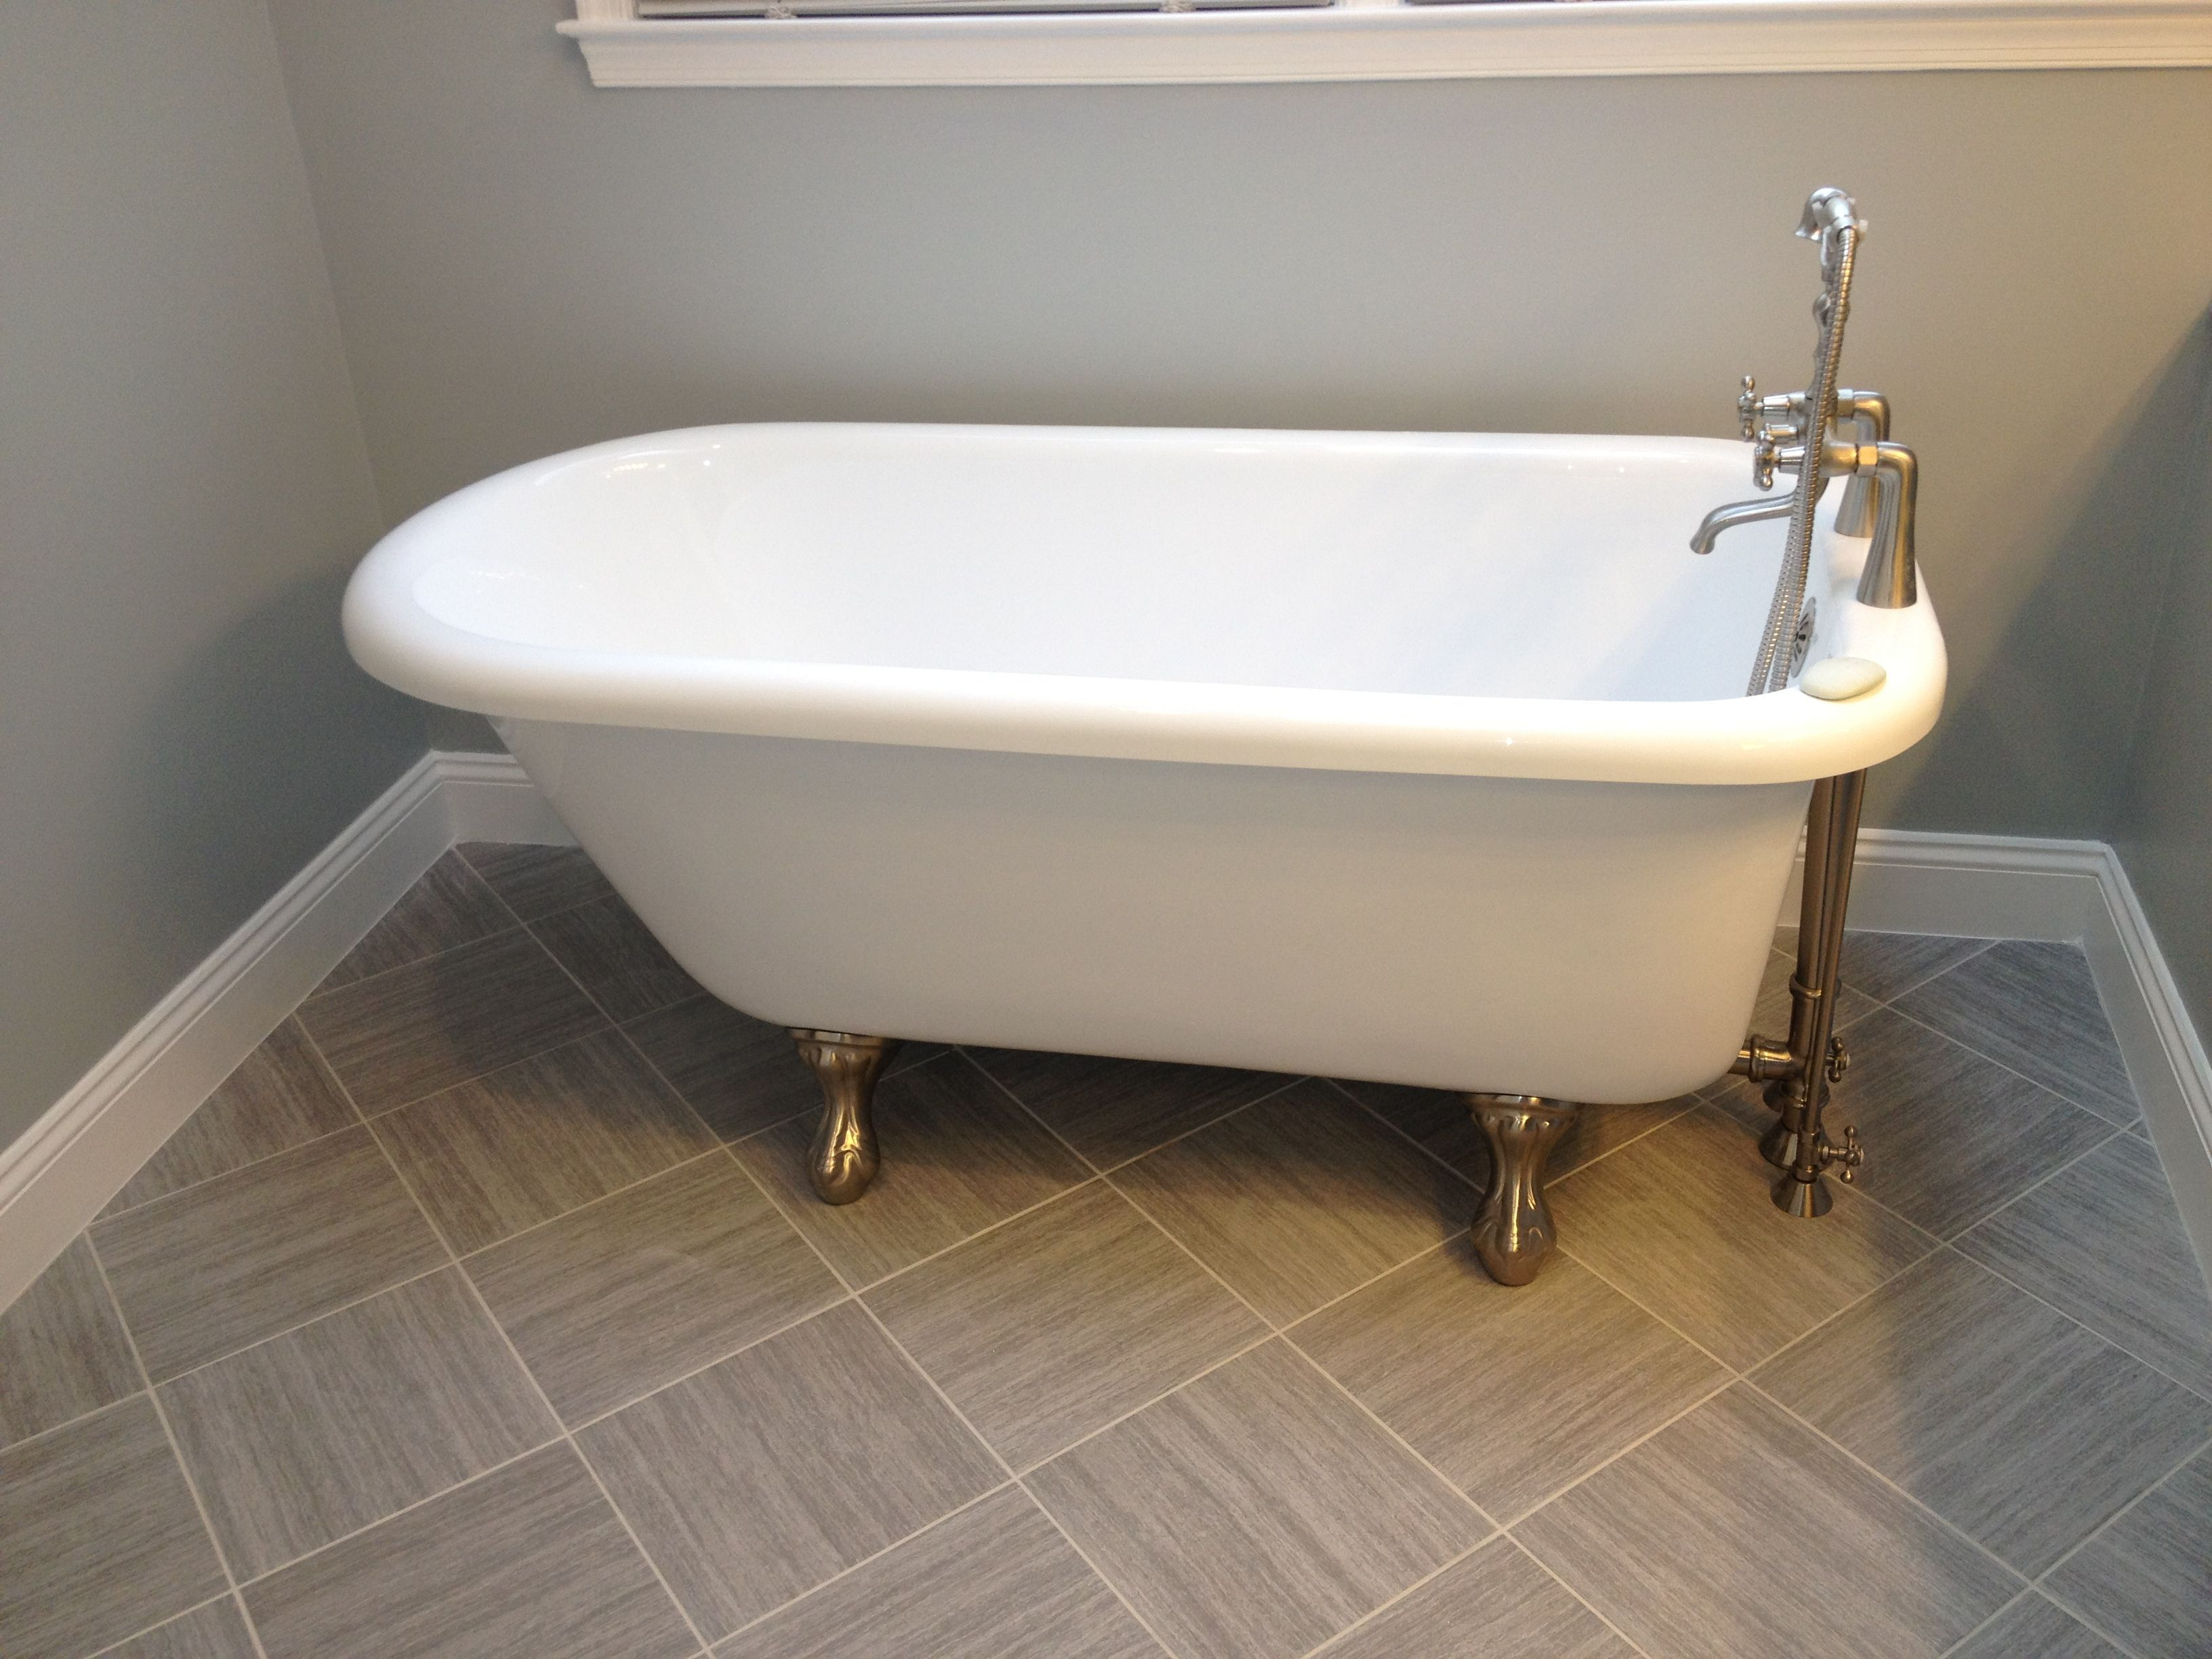 Clawfoot Tub Picture Gallery | Bathroom & Laundry Room | Pinterest ...